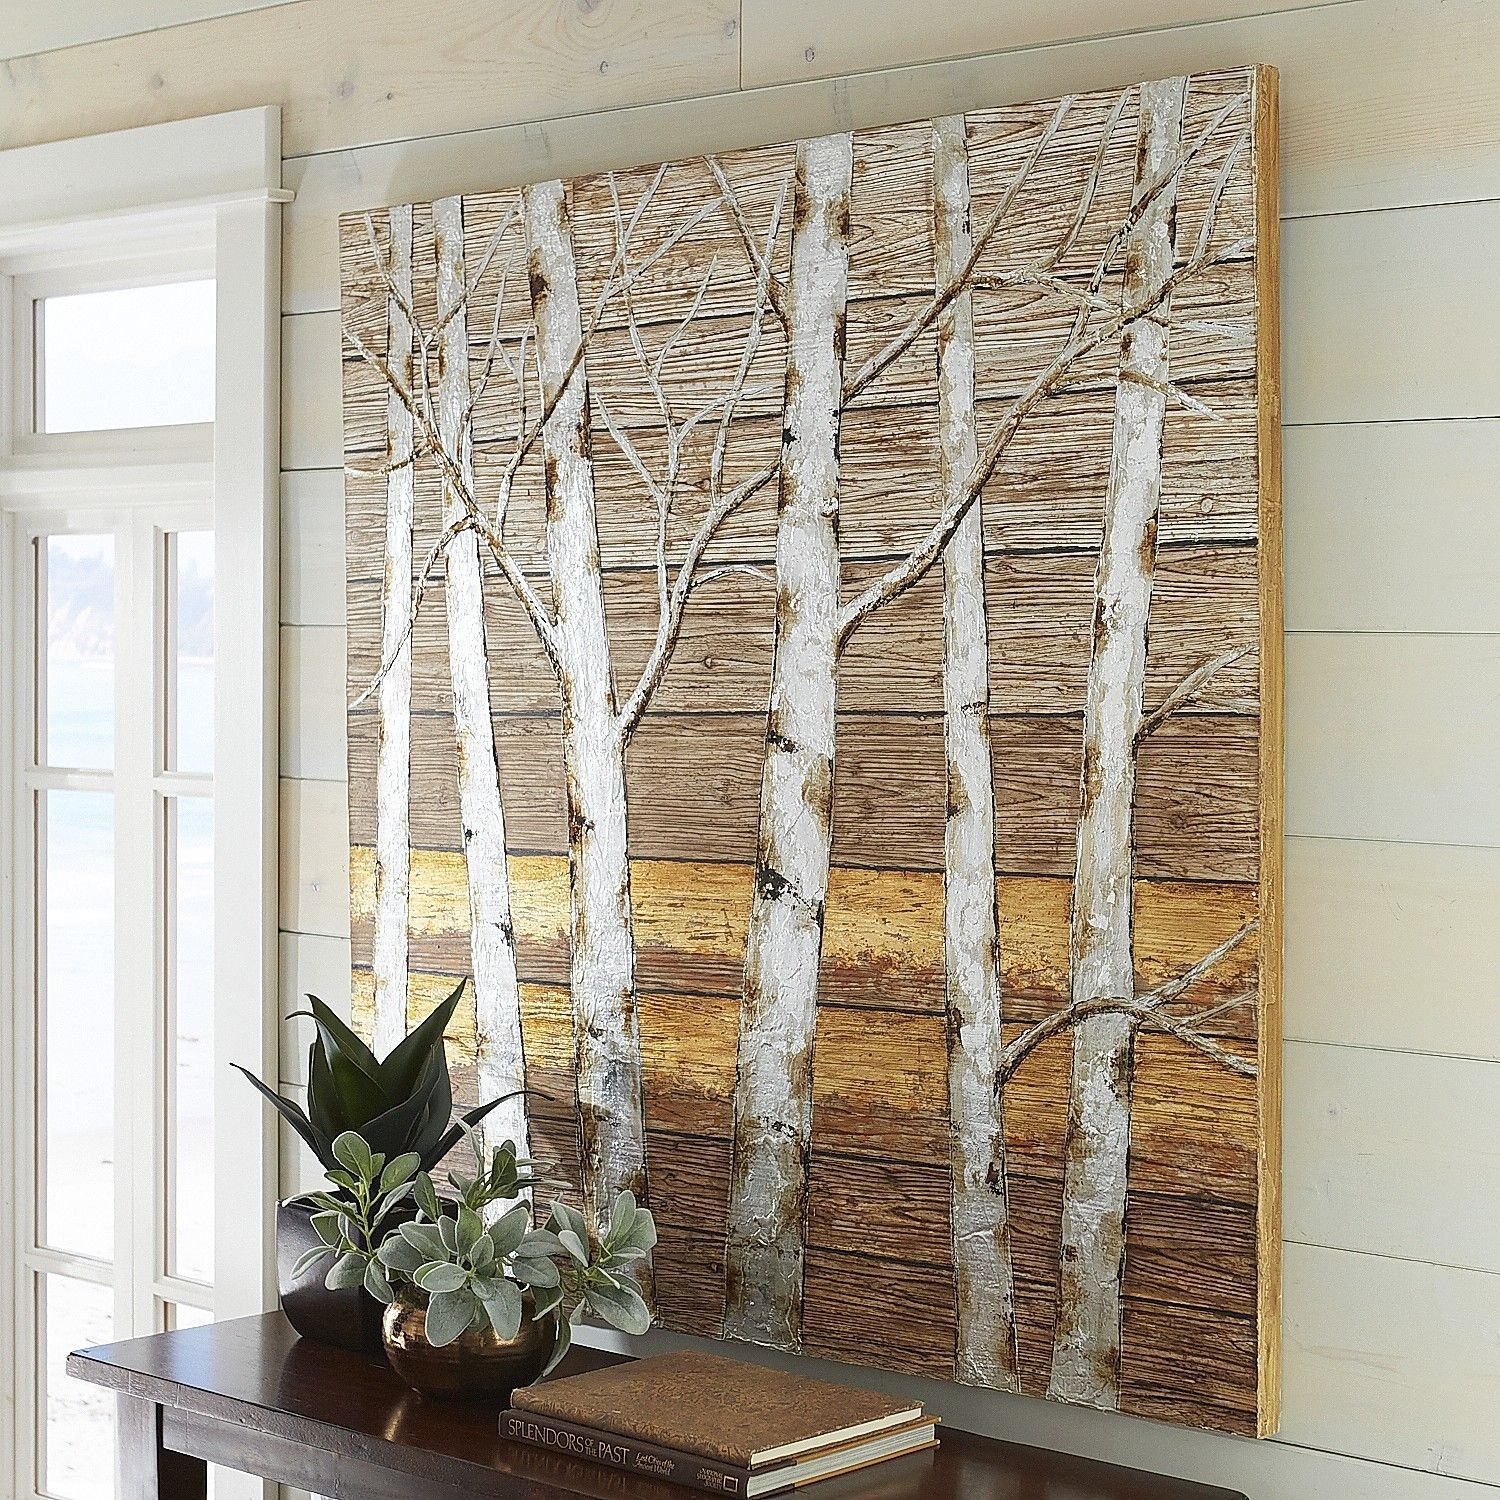 Metallic Birch Trees Wall Art – 4X4 In Most Current Plank Wall Art (View 10 of 20)